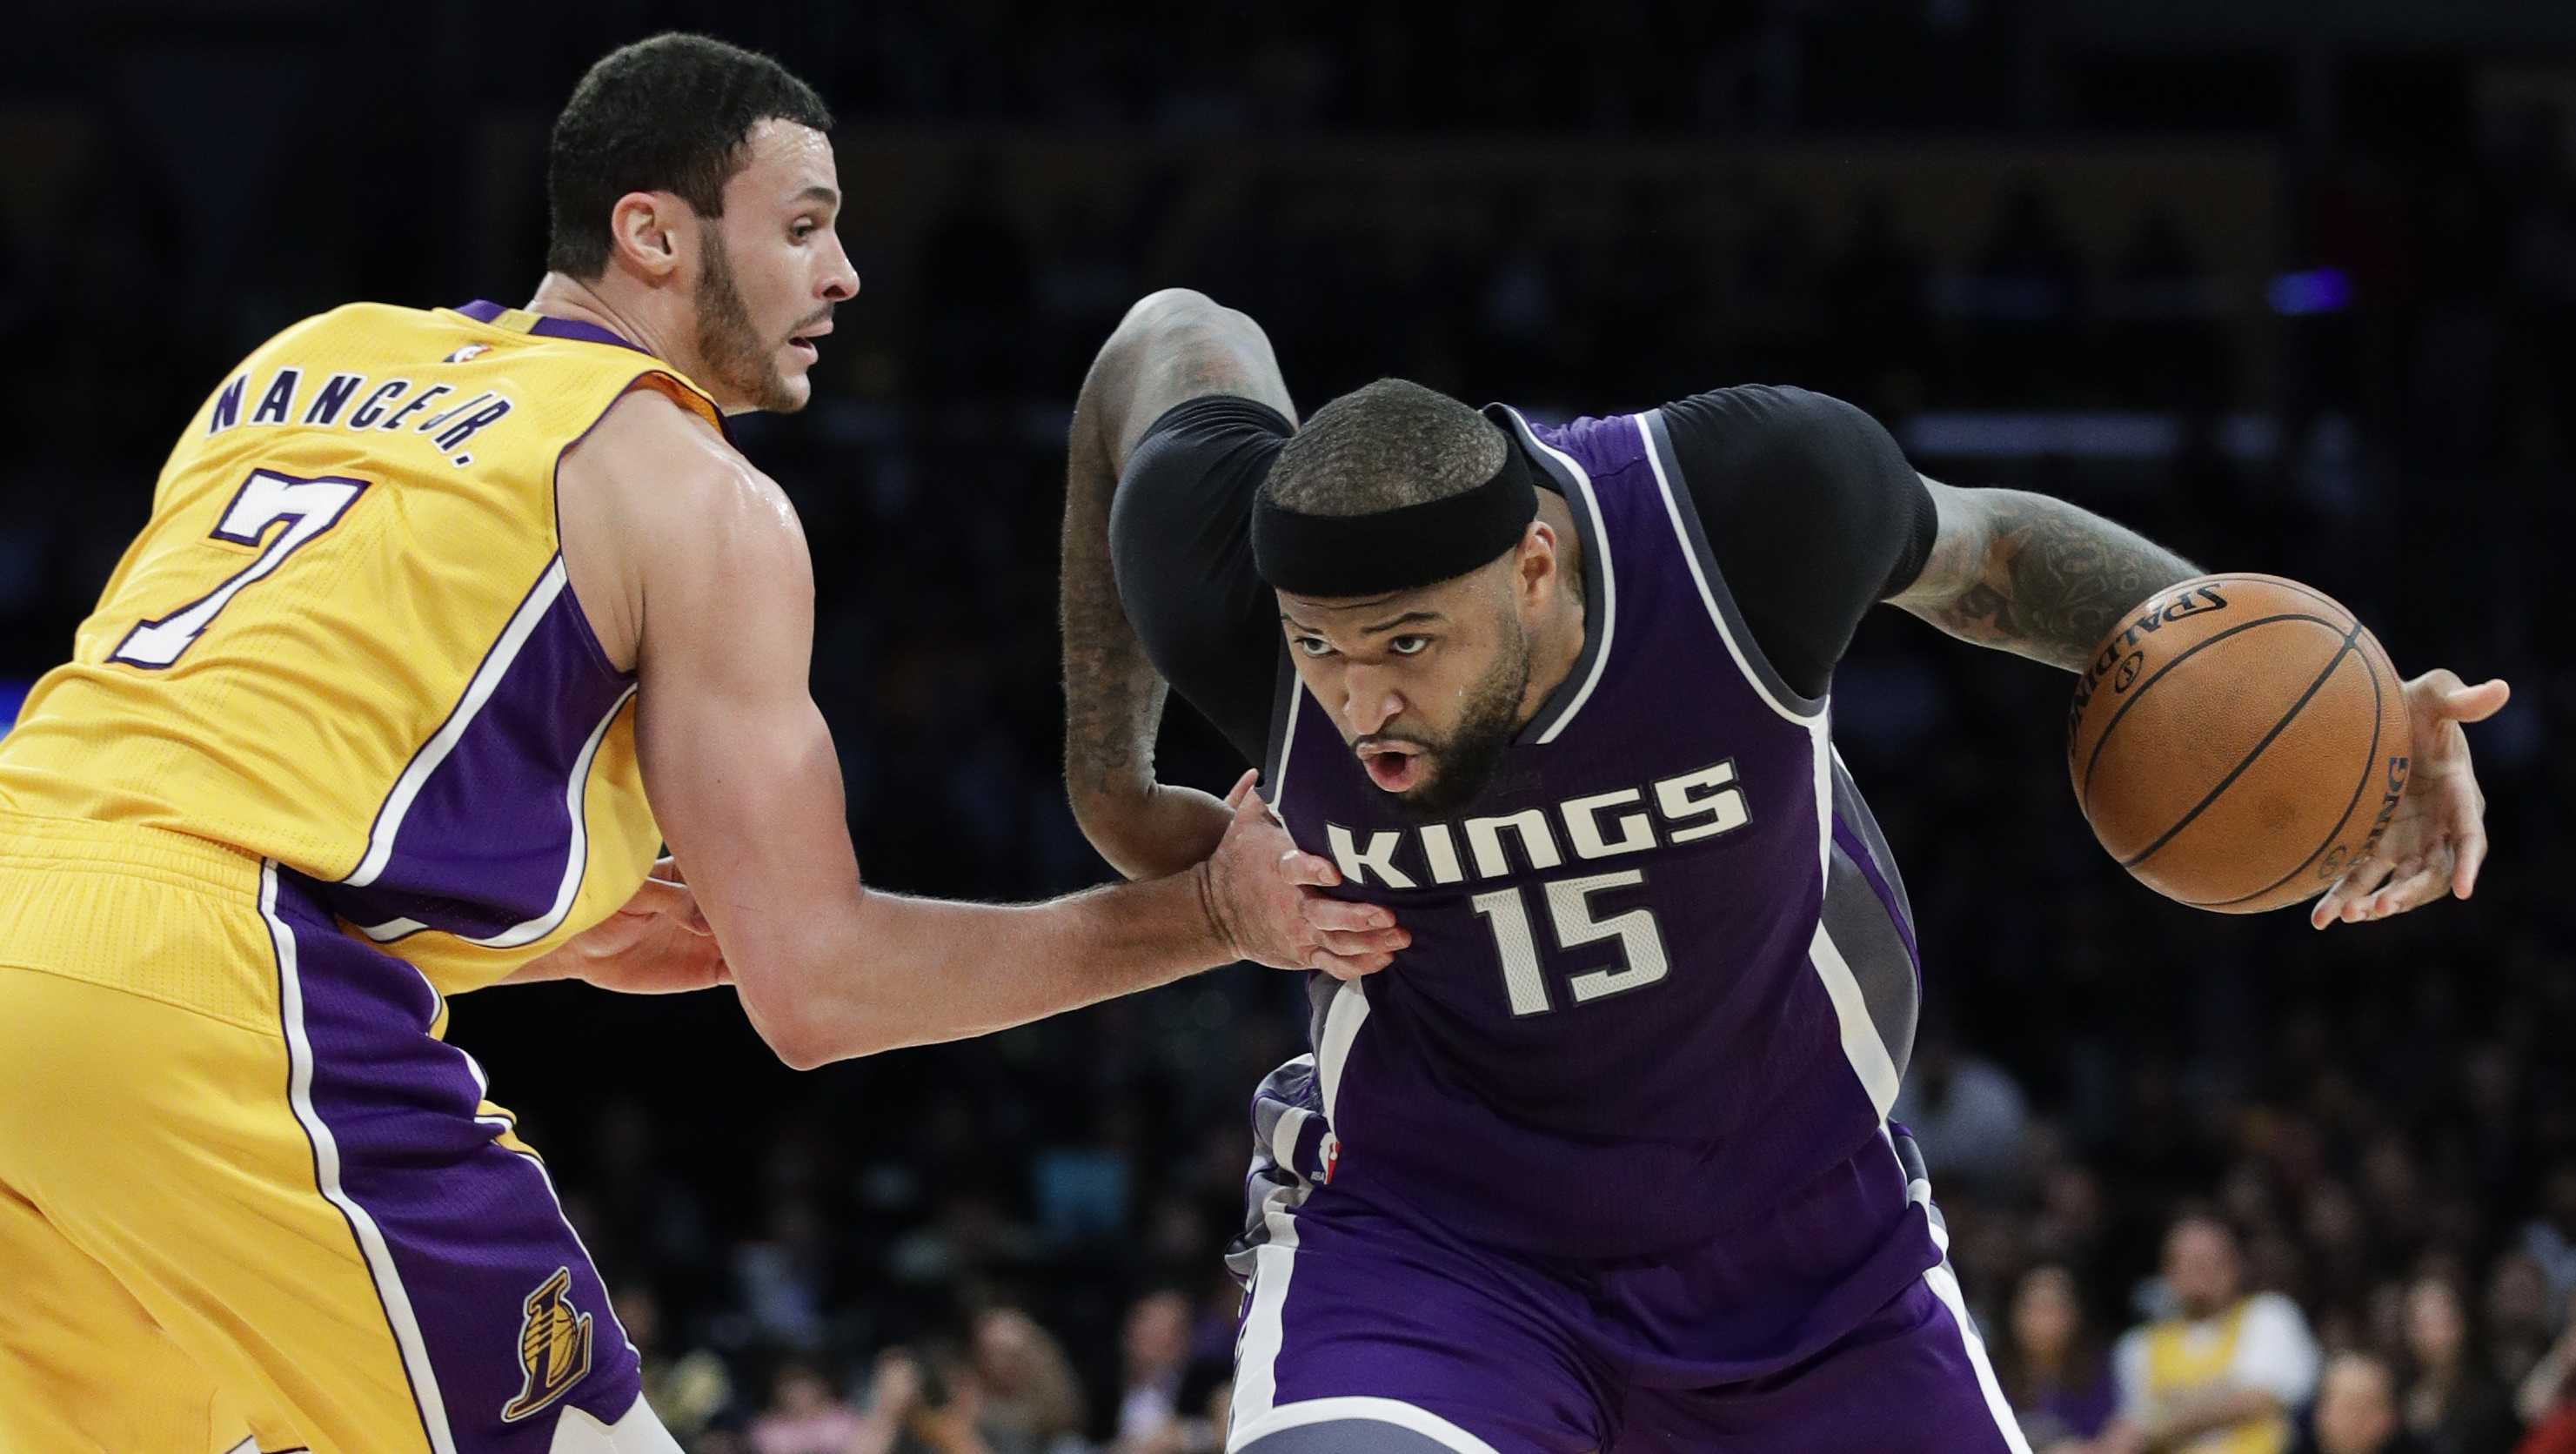 Sacramento Kings' DeMarcus Cousins, right, drives past Los Angeles Lakers' Larry Nance Jr. during the second half of an NBA basketball game, Tuesday, Feb. 14, 2017, in Los Angeles.